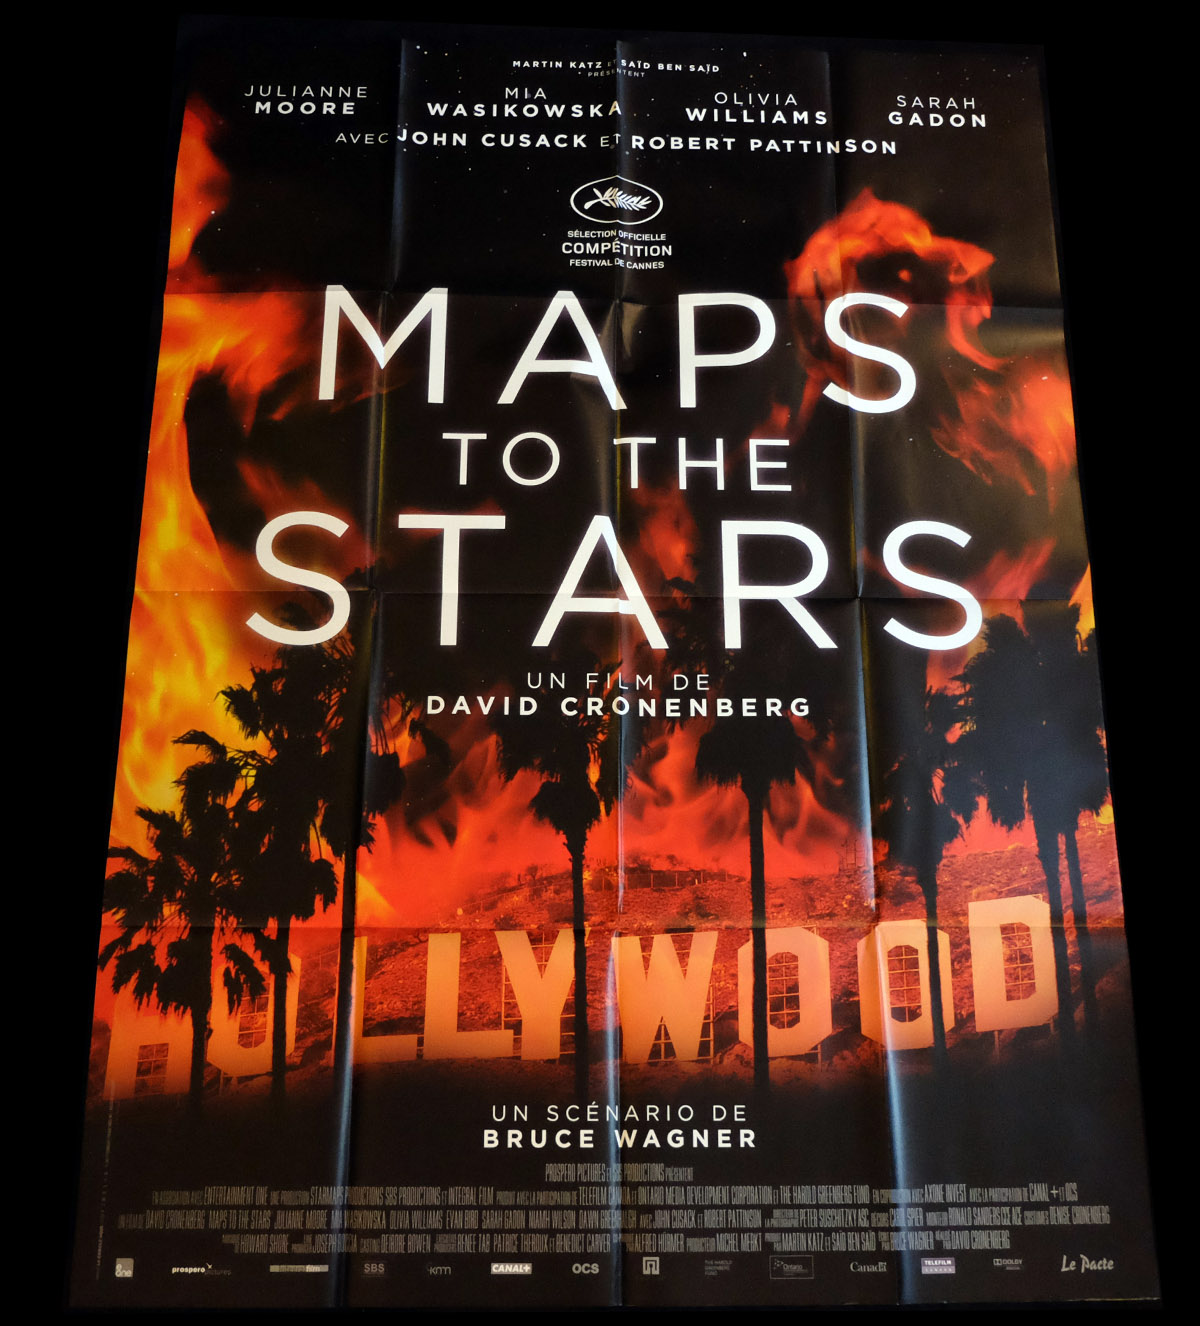 MAPS TO THE STARS French Movie Poster 47x63 - 2014 - David Cronenberg, Map To The Stars Movie on trip map, space map, war map, princess map, fun map, statue map, portrait map, adventure map, musical map, animation map, 9gag map, action map, media map, water map, dual screen map, game map, novel map, right to die map, seaworld gold coast map, business map,